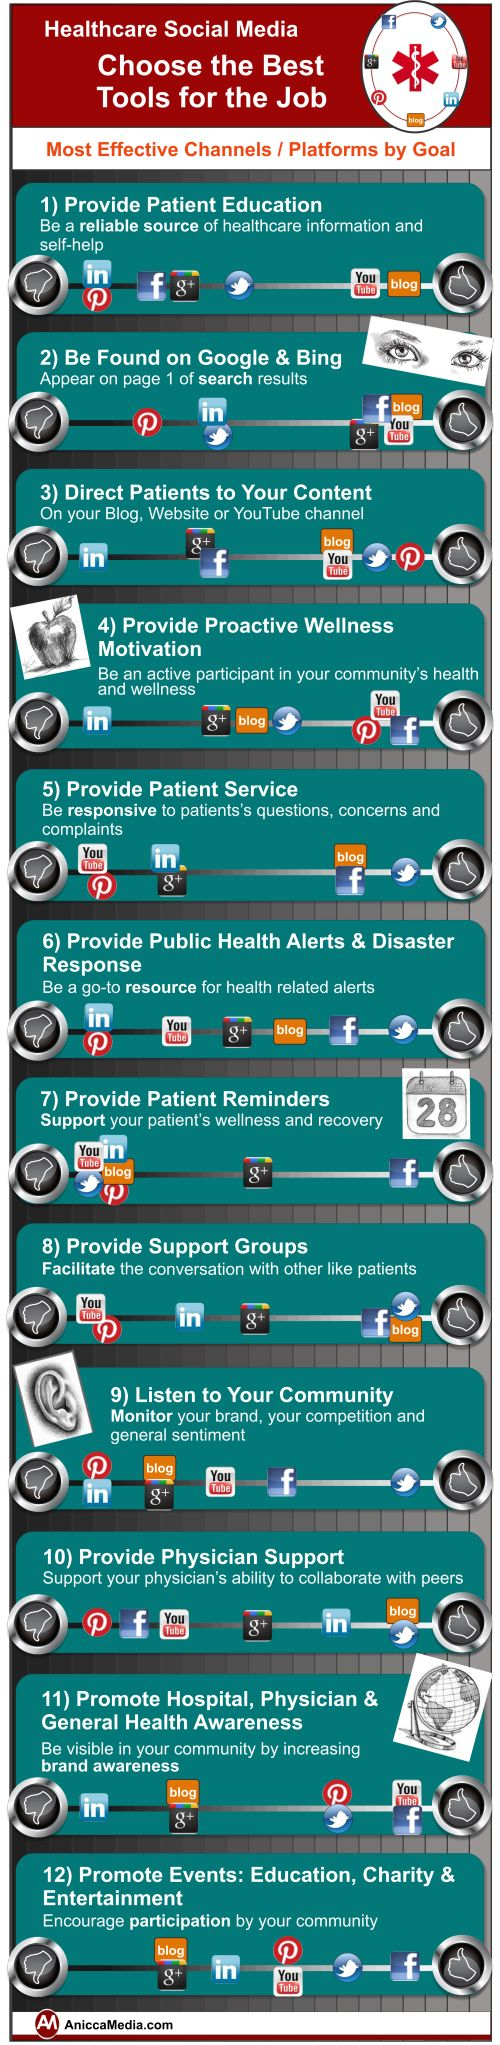 ealthcare Social Media: Choose the Best Tools for the Job (Infographic)